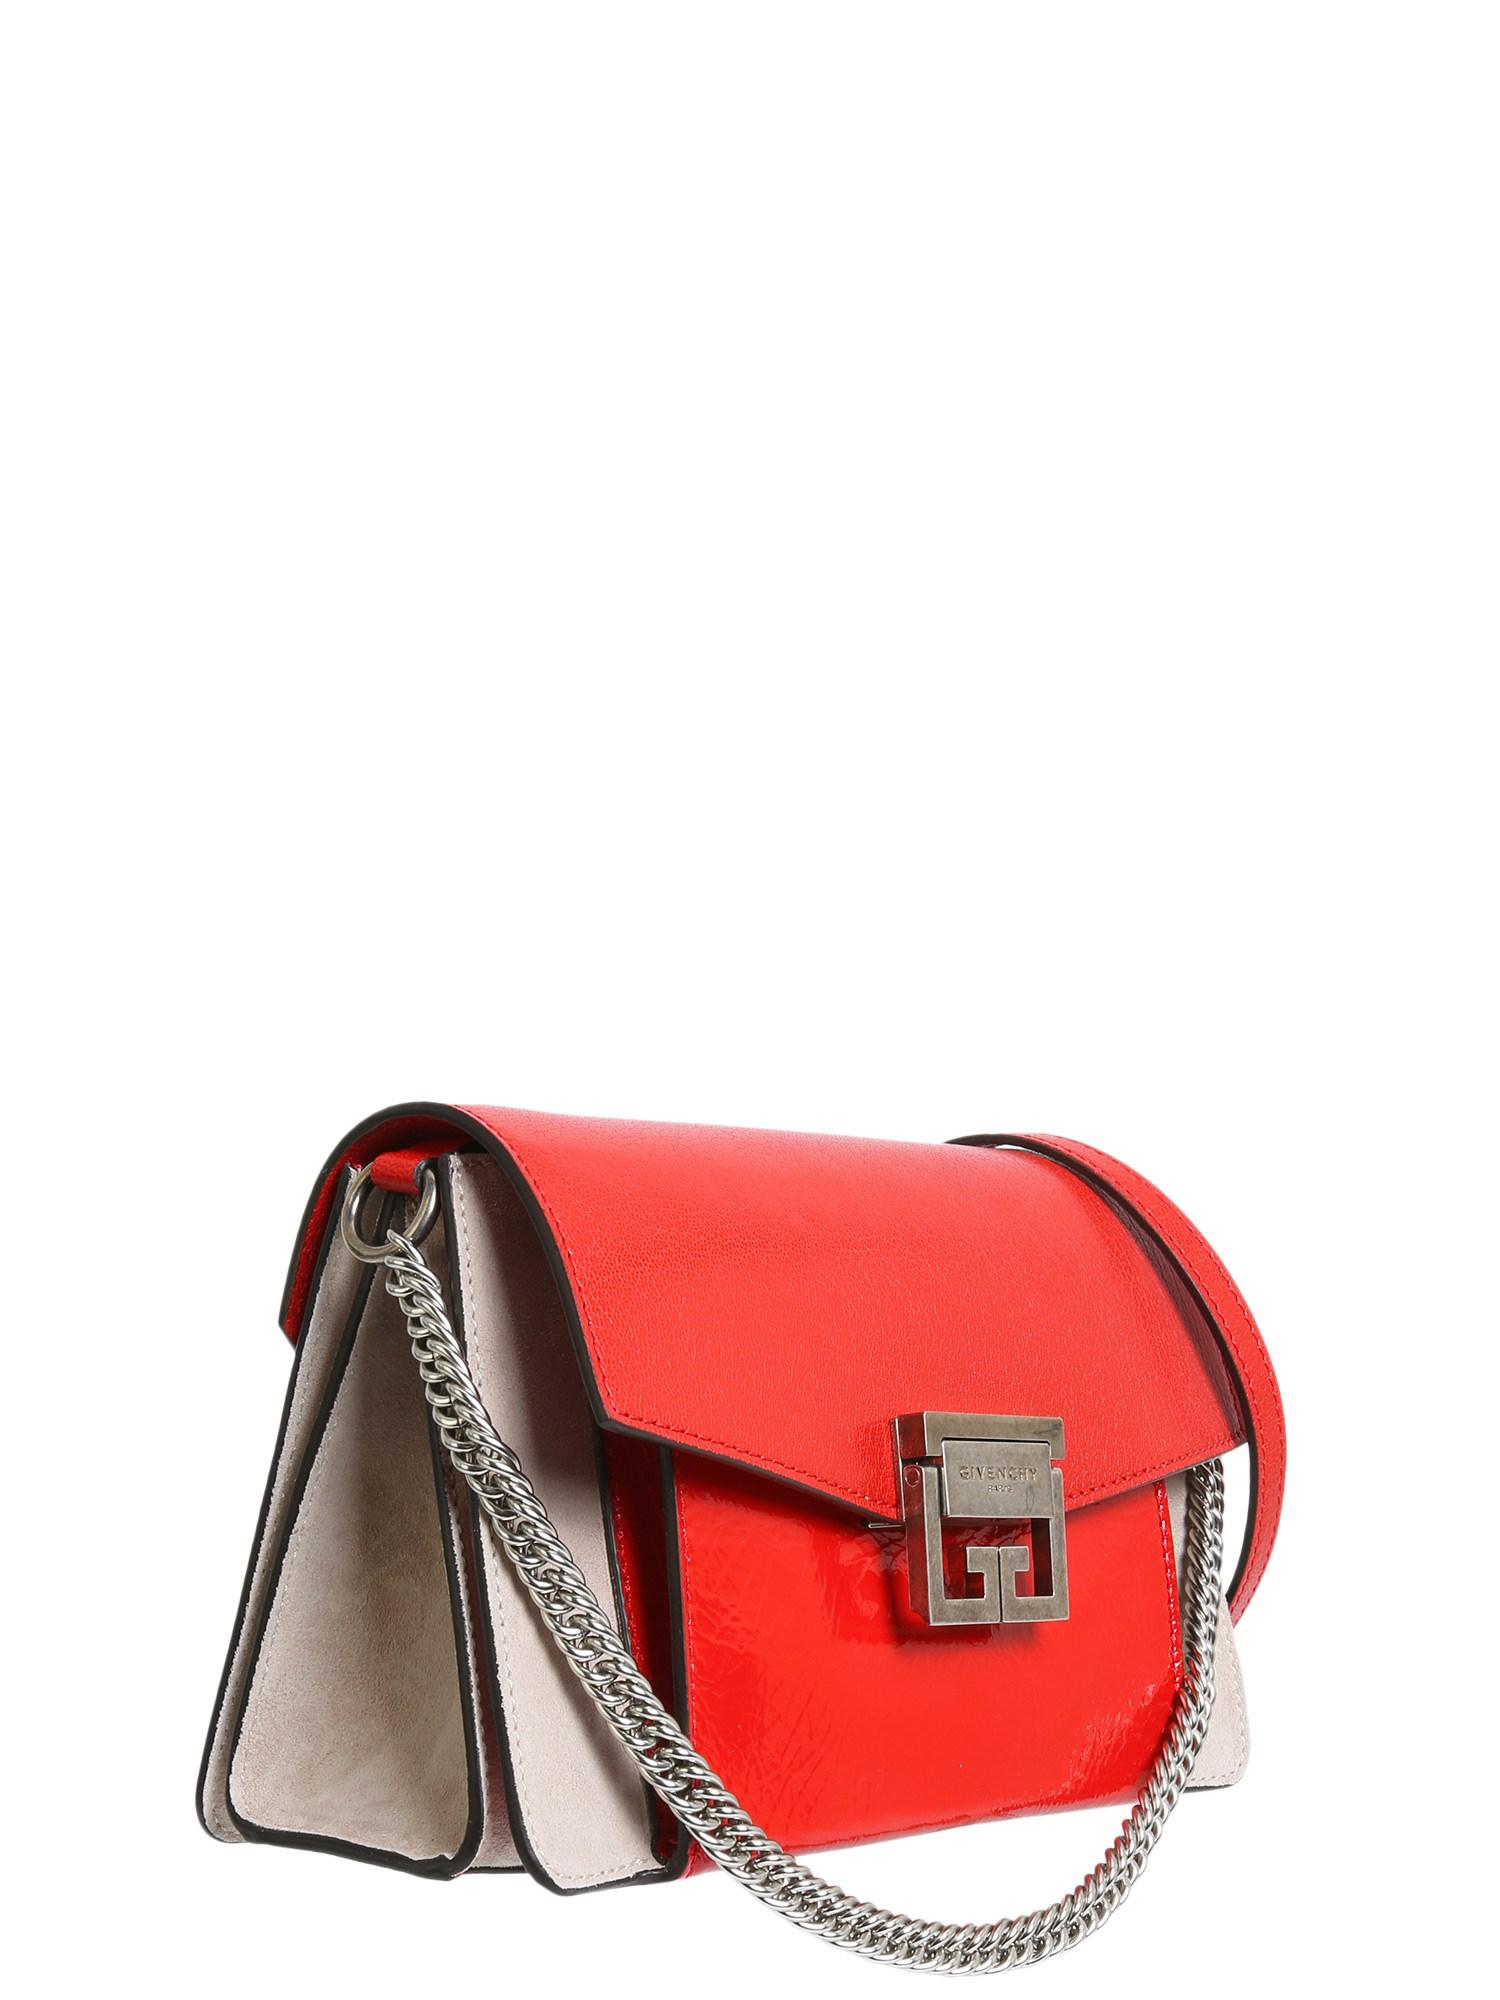 a187ebde4fd Givenchy - Red Small Gv3 Bag In Double Leather - Lyst. View fullscreen